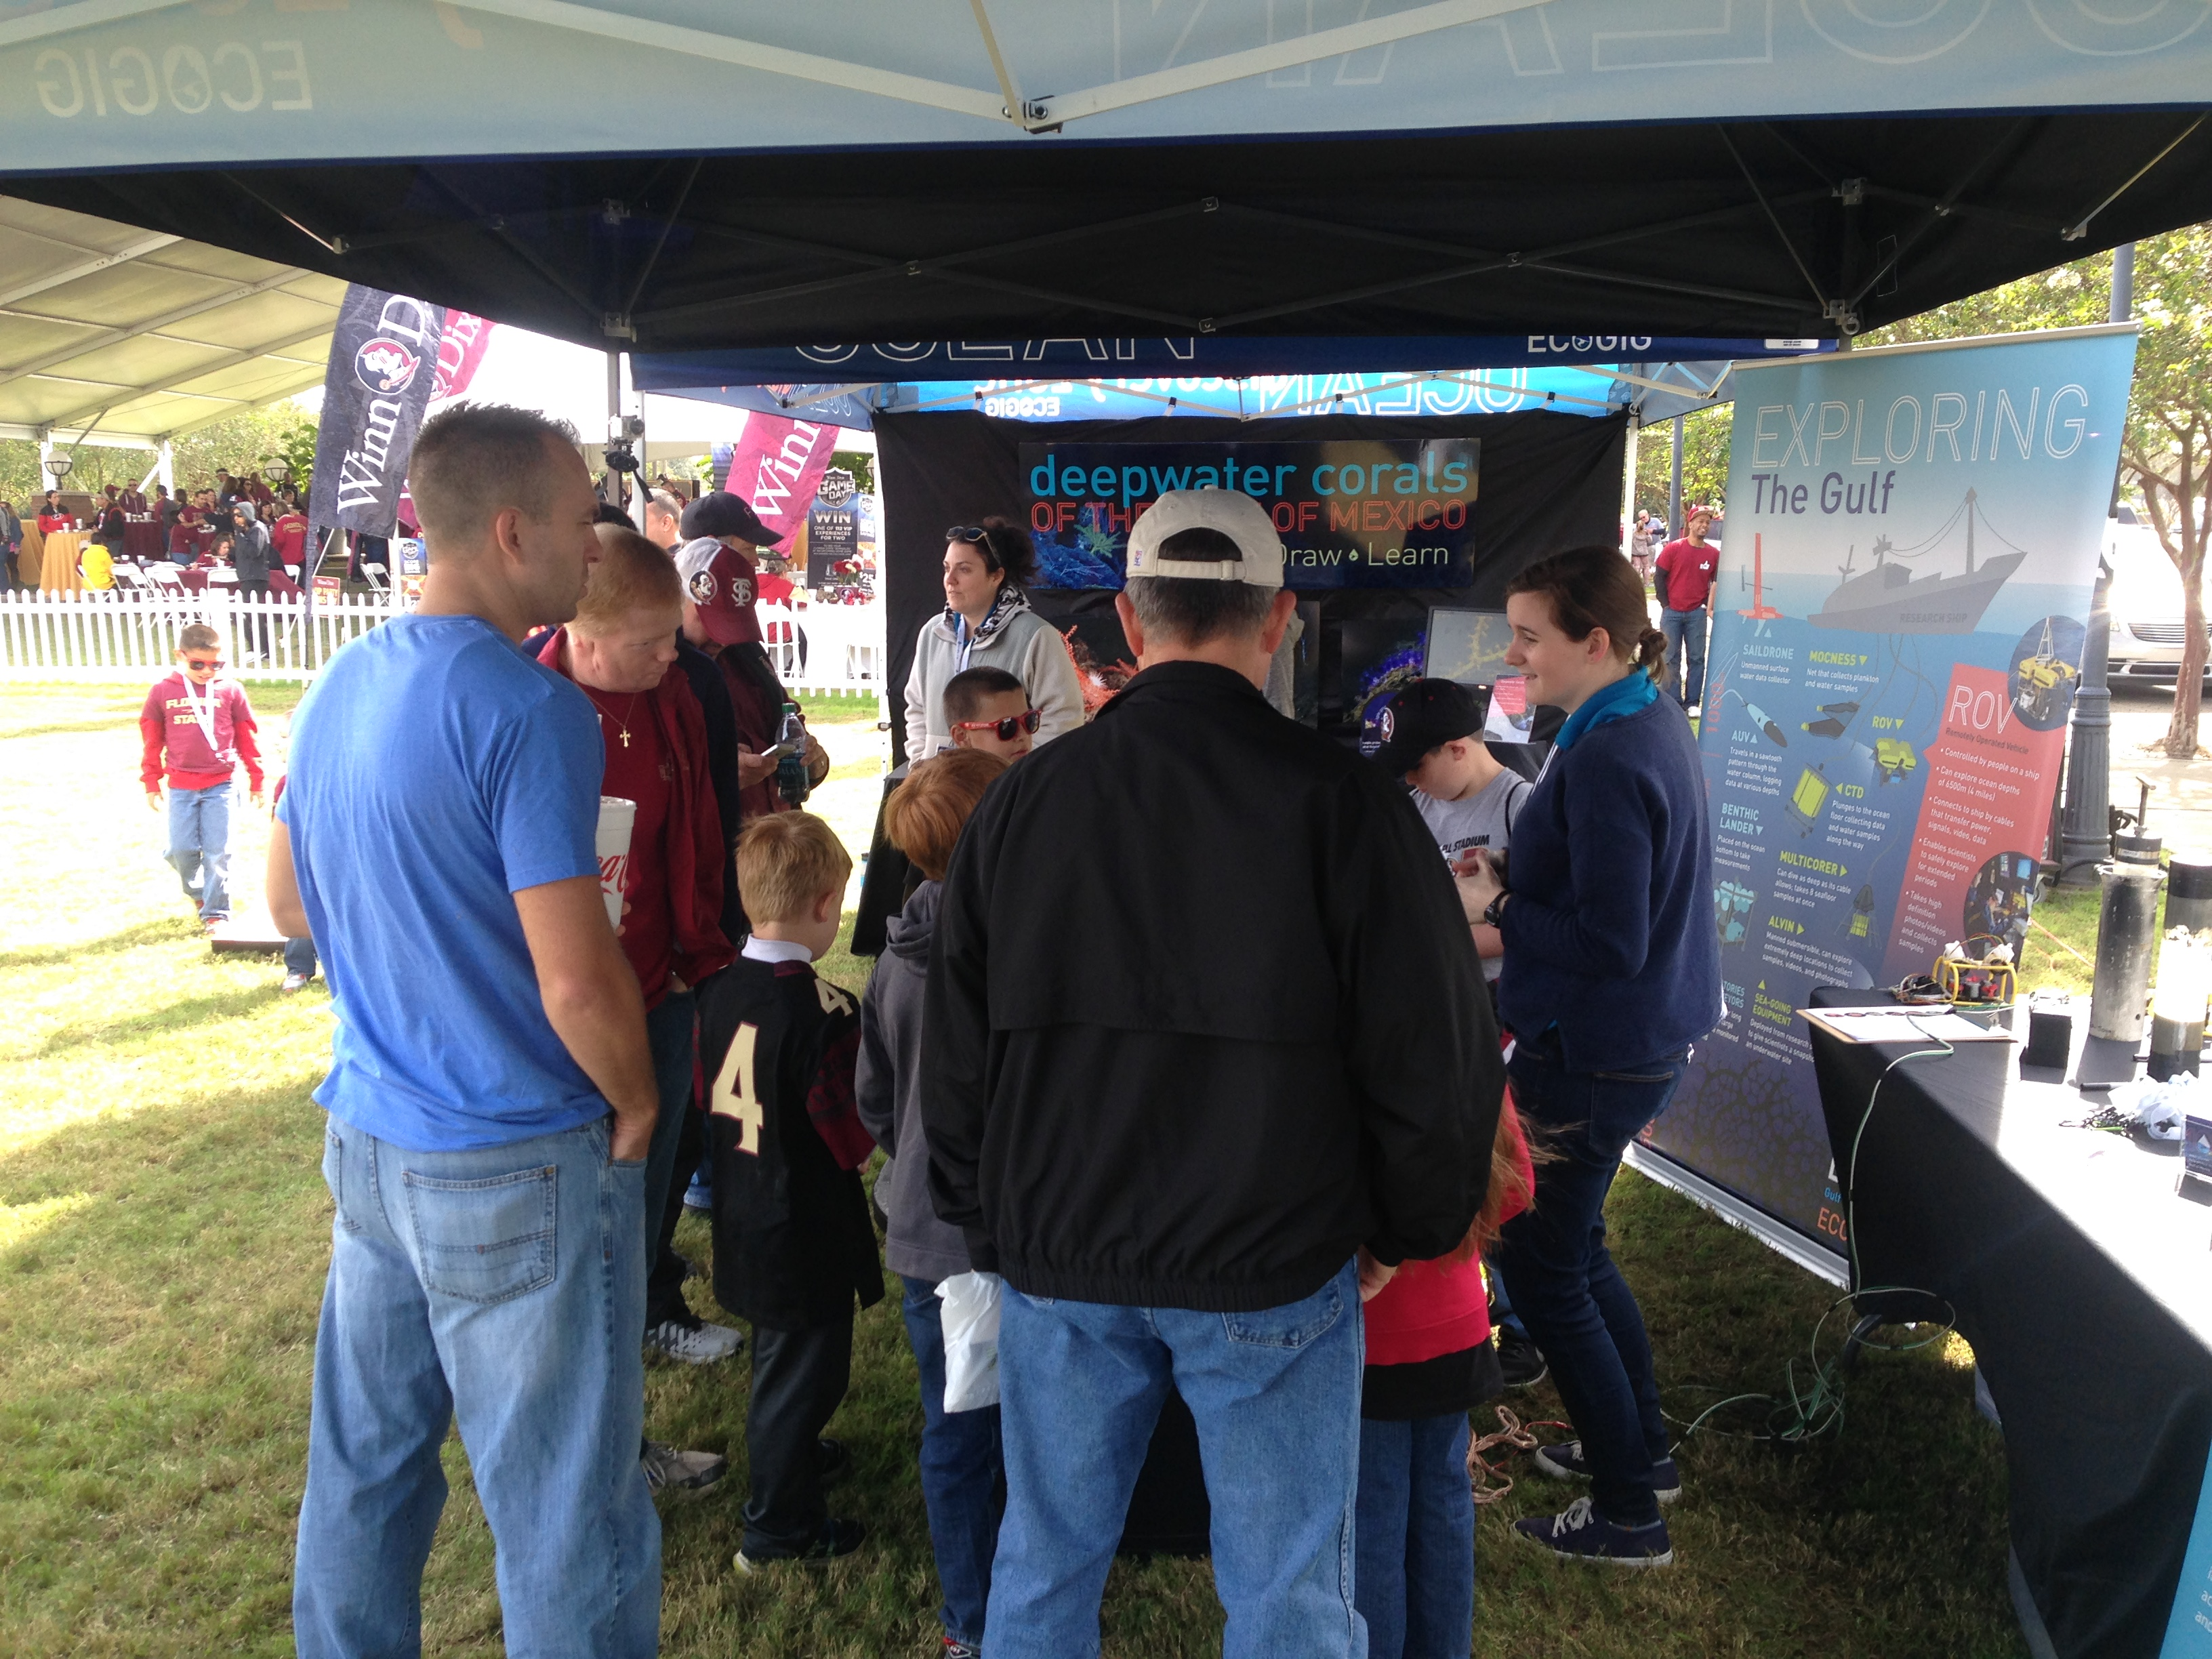 <div style='color:#000000;'><br /><br /><h2>2015 Florida State University. We enjoyed all the visitors who stopped by the Ocean Discovery Zone- our ROV tank was a hit!</h2>(C)&nbsp;ECOGIG</div>